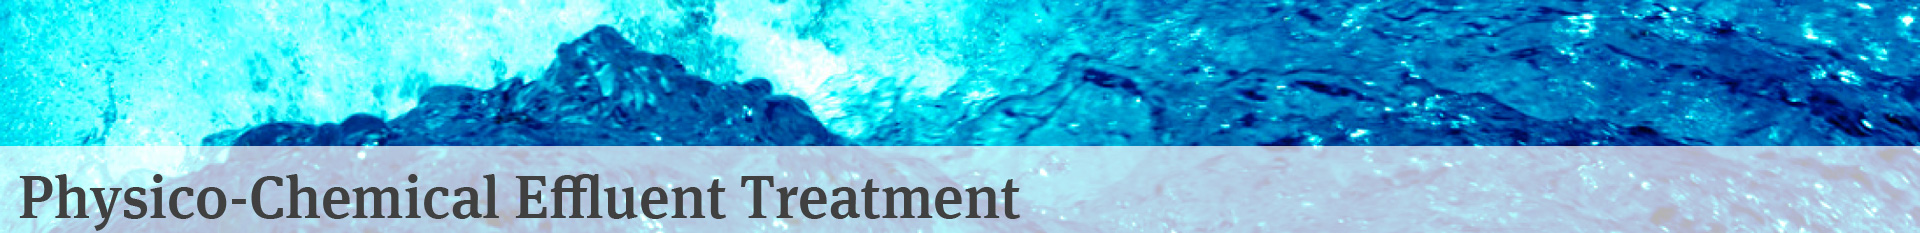 Physico-Chemical Effluent Treatment